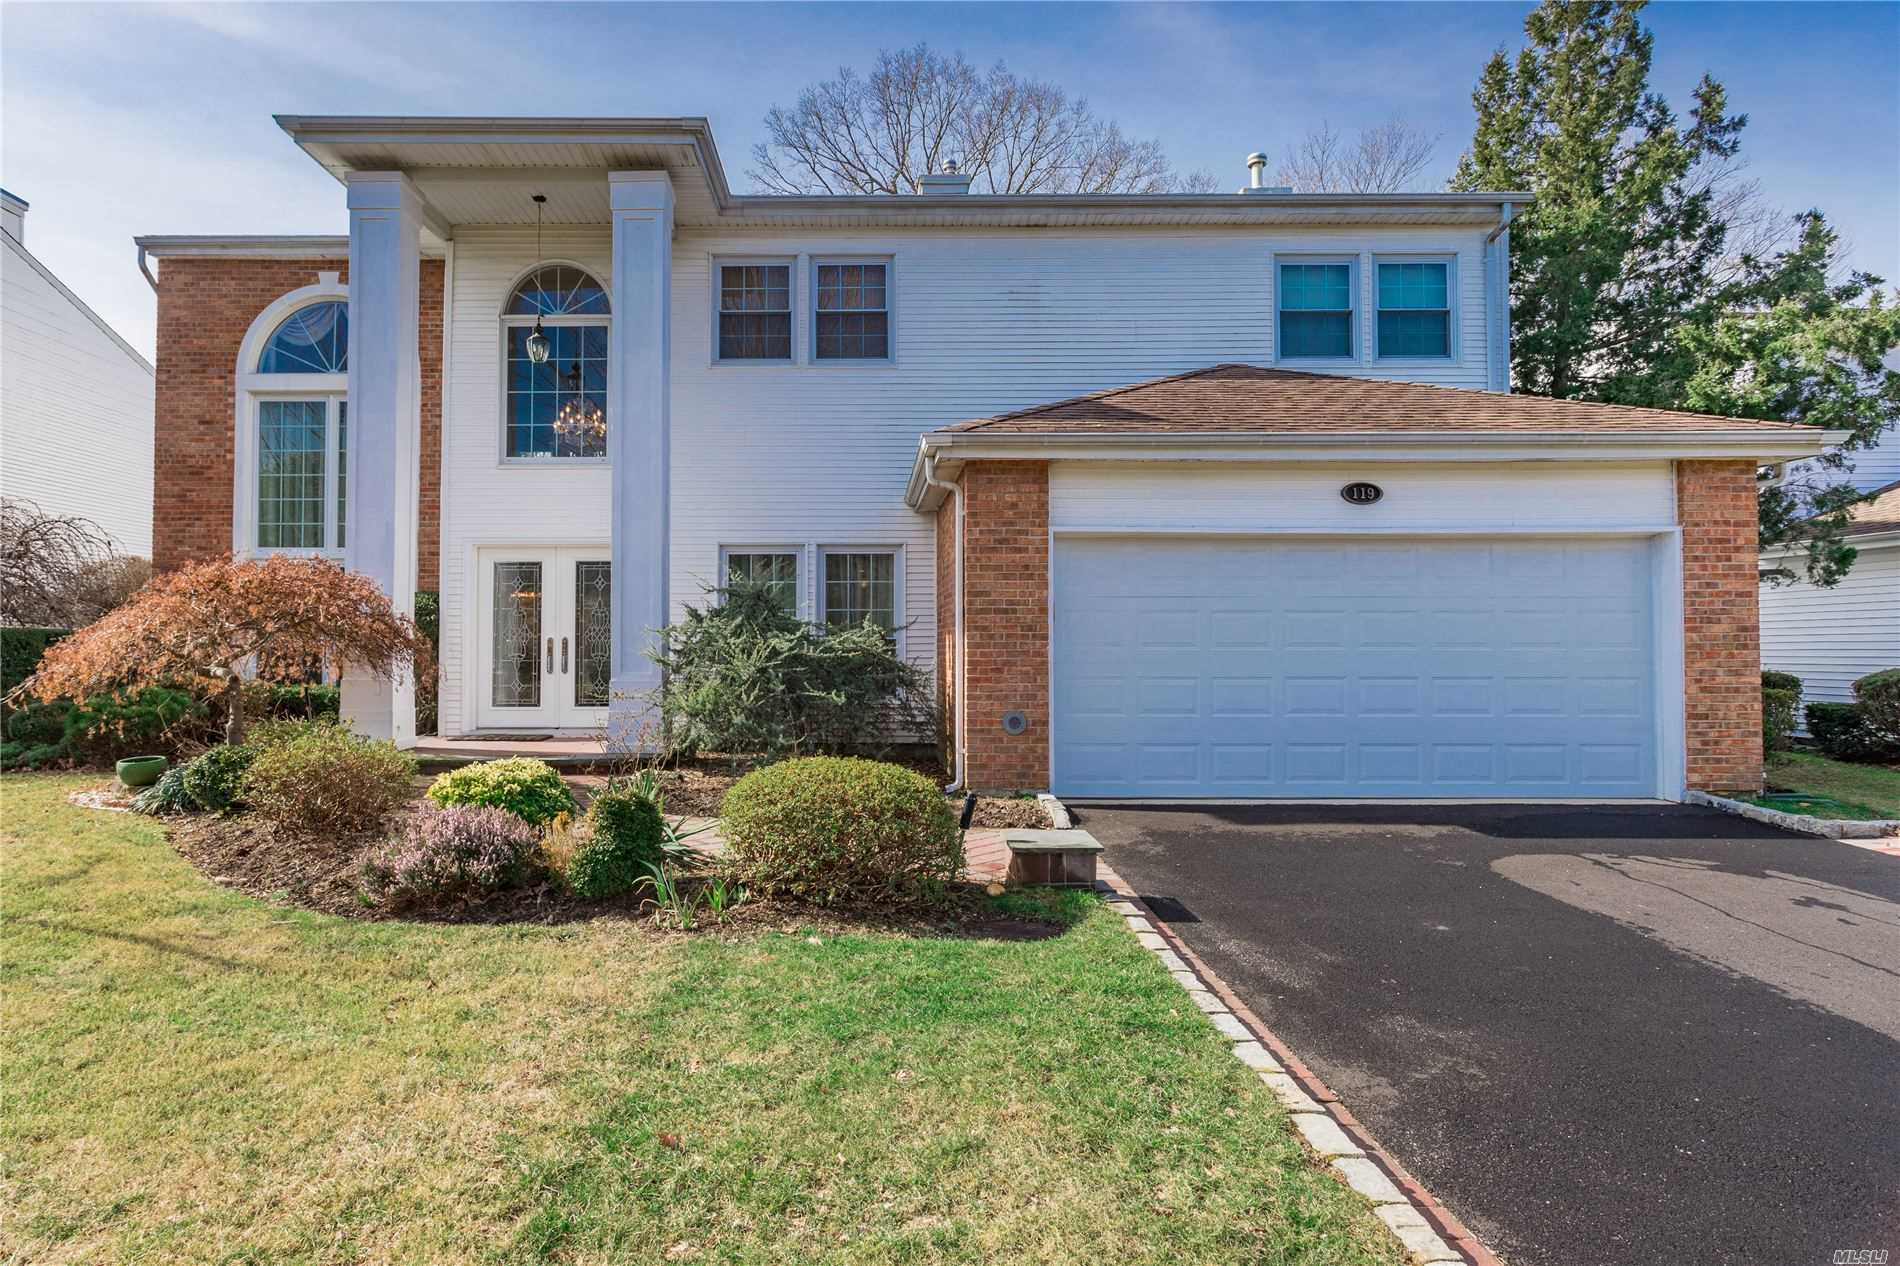 Property for sale at 119 Fairway View Drive, Commack NY 11725, Commack,  New York 11725